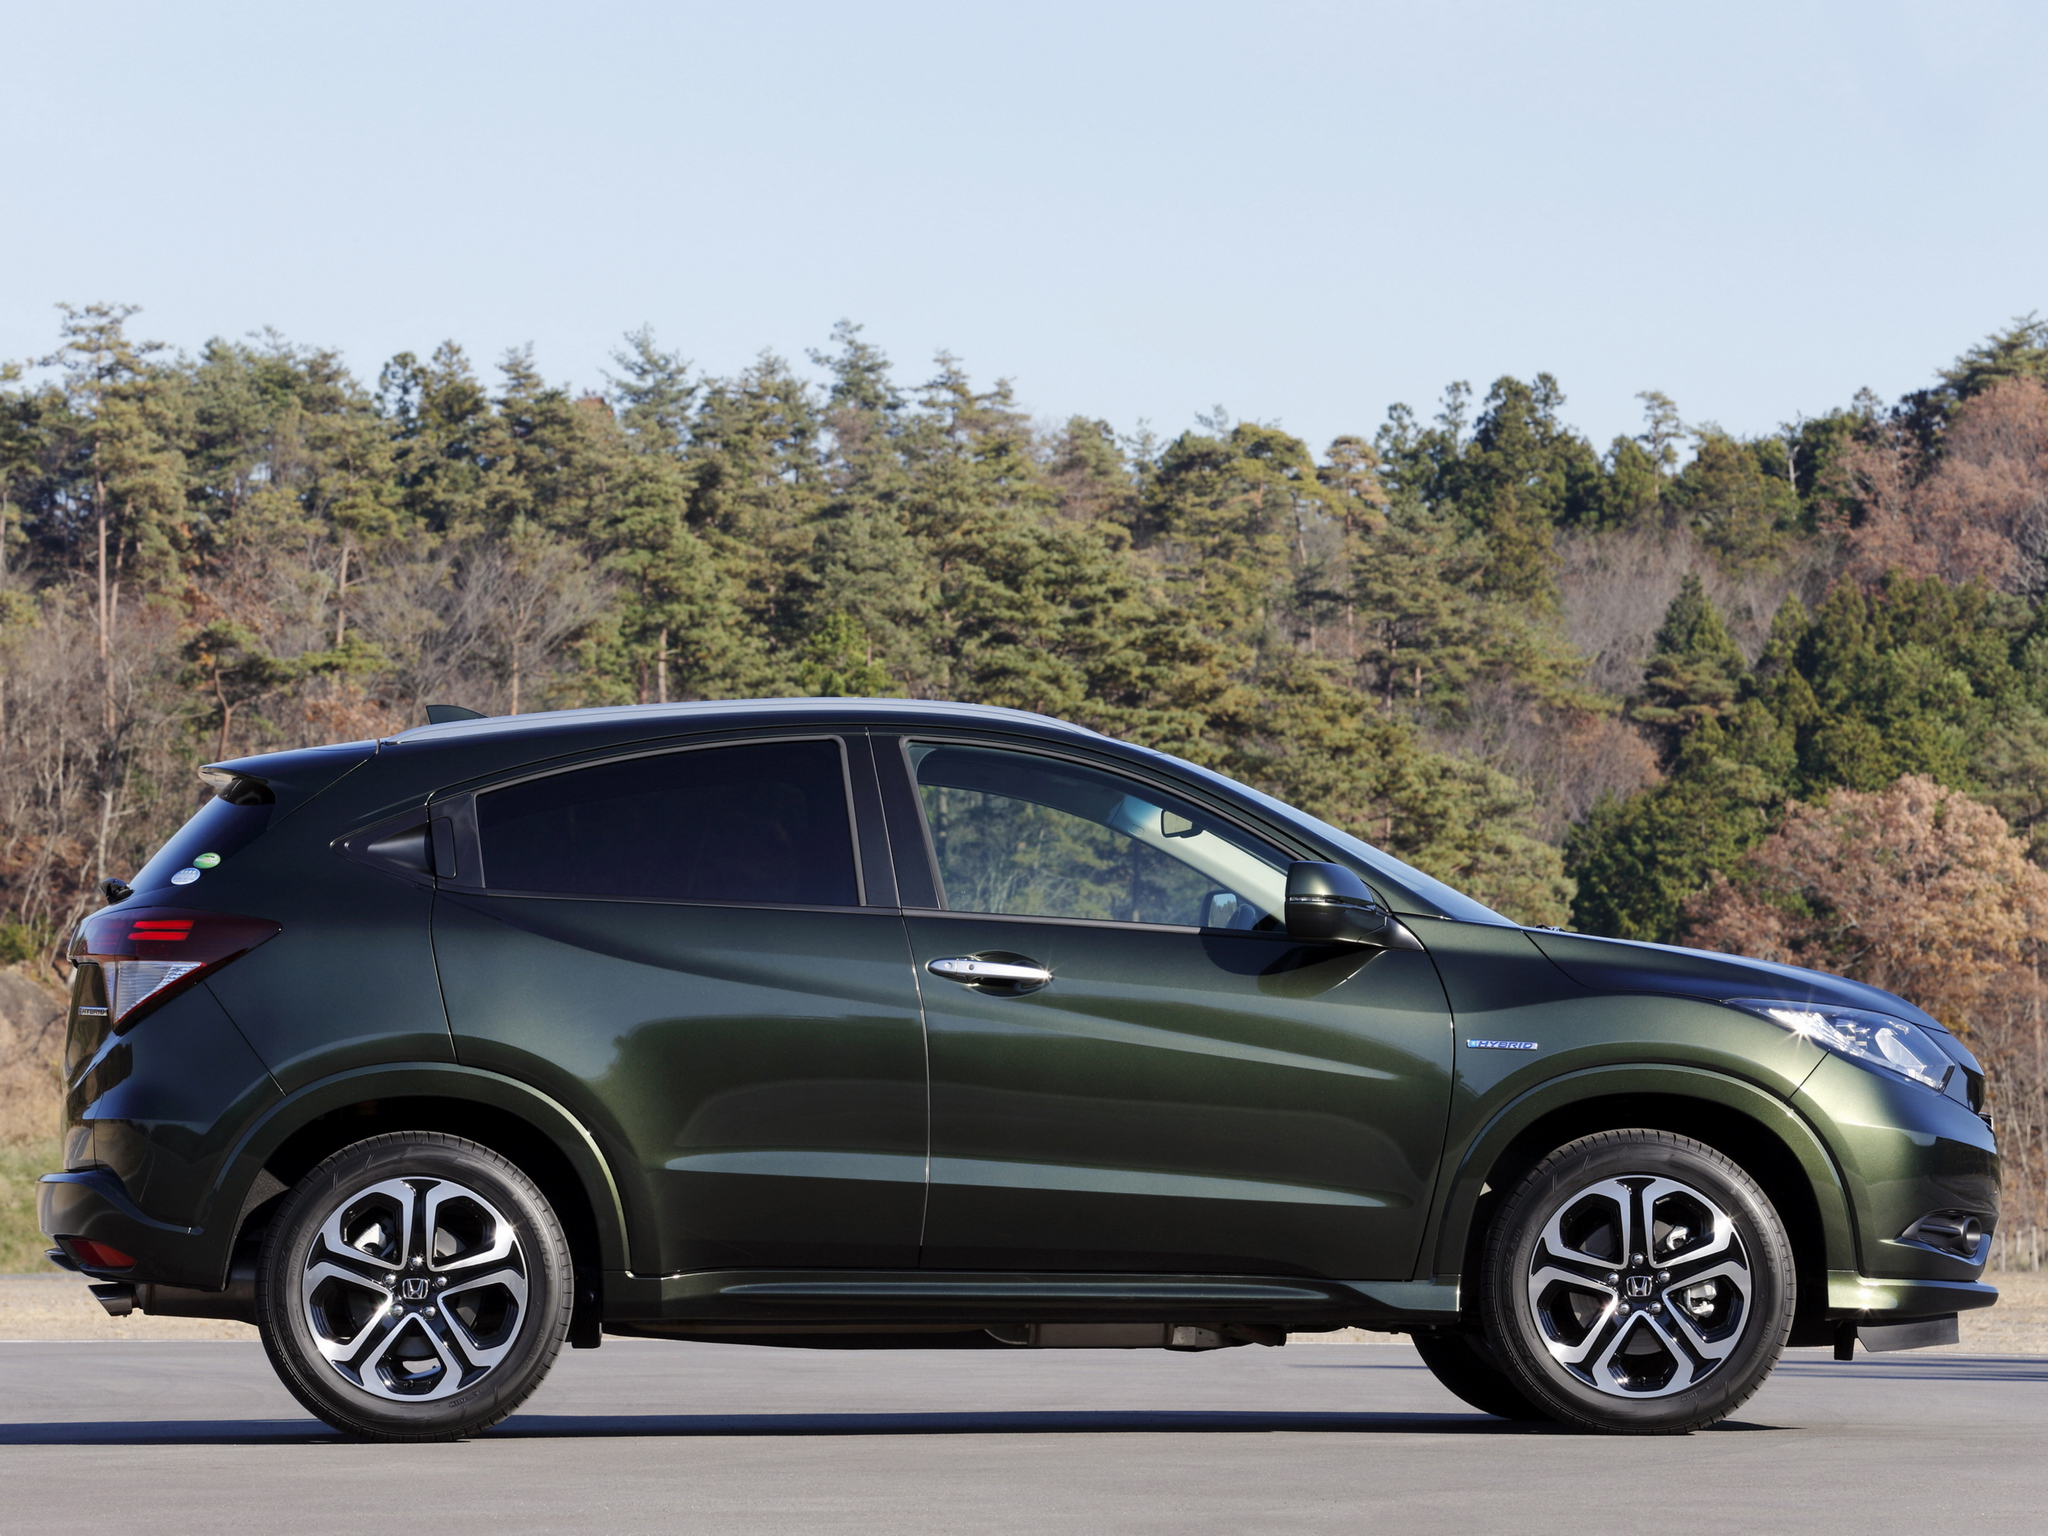 Honda Avancier SUV HD Wallpapers